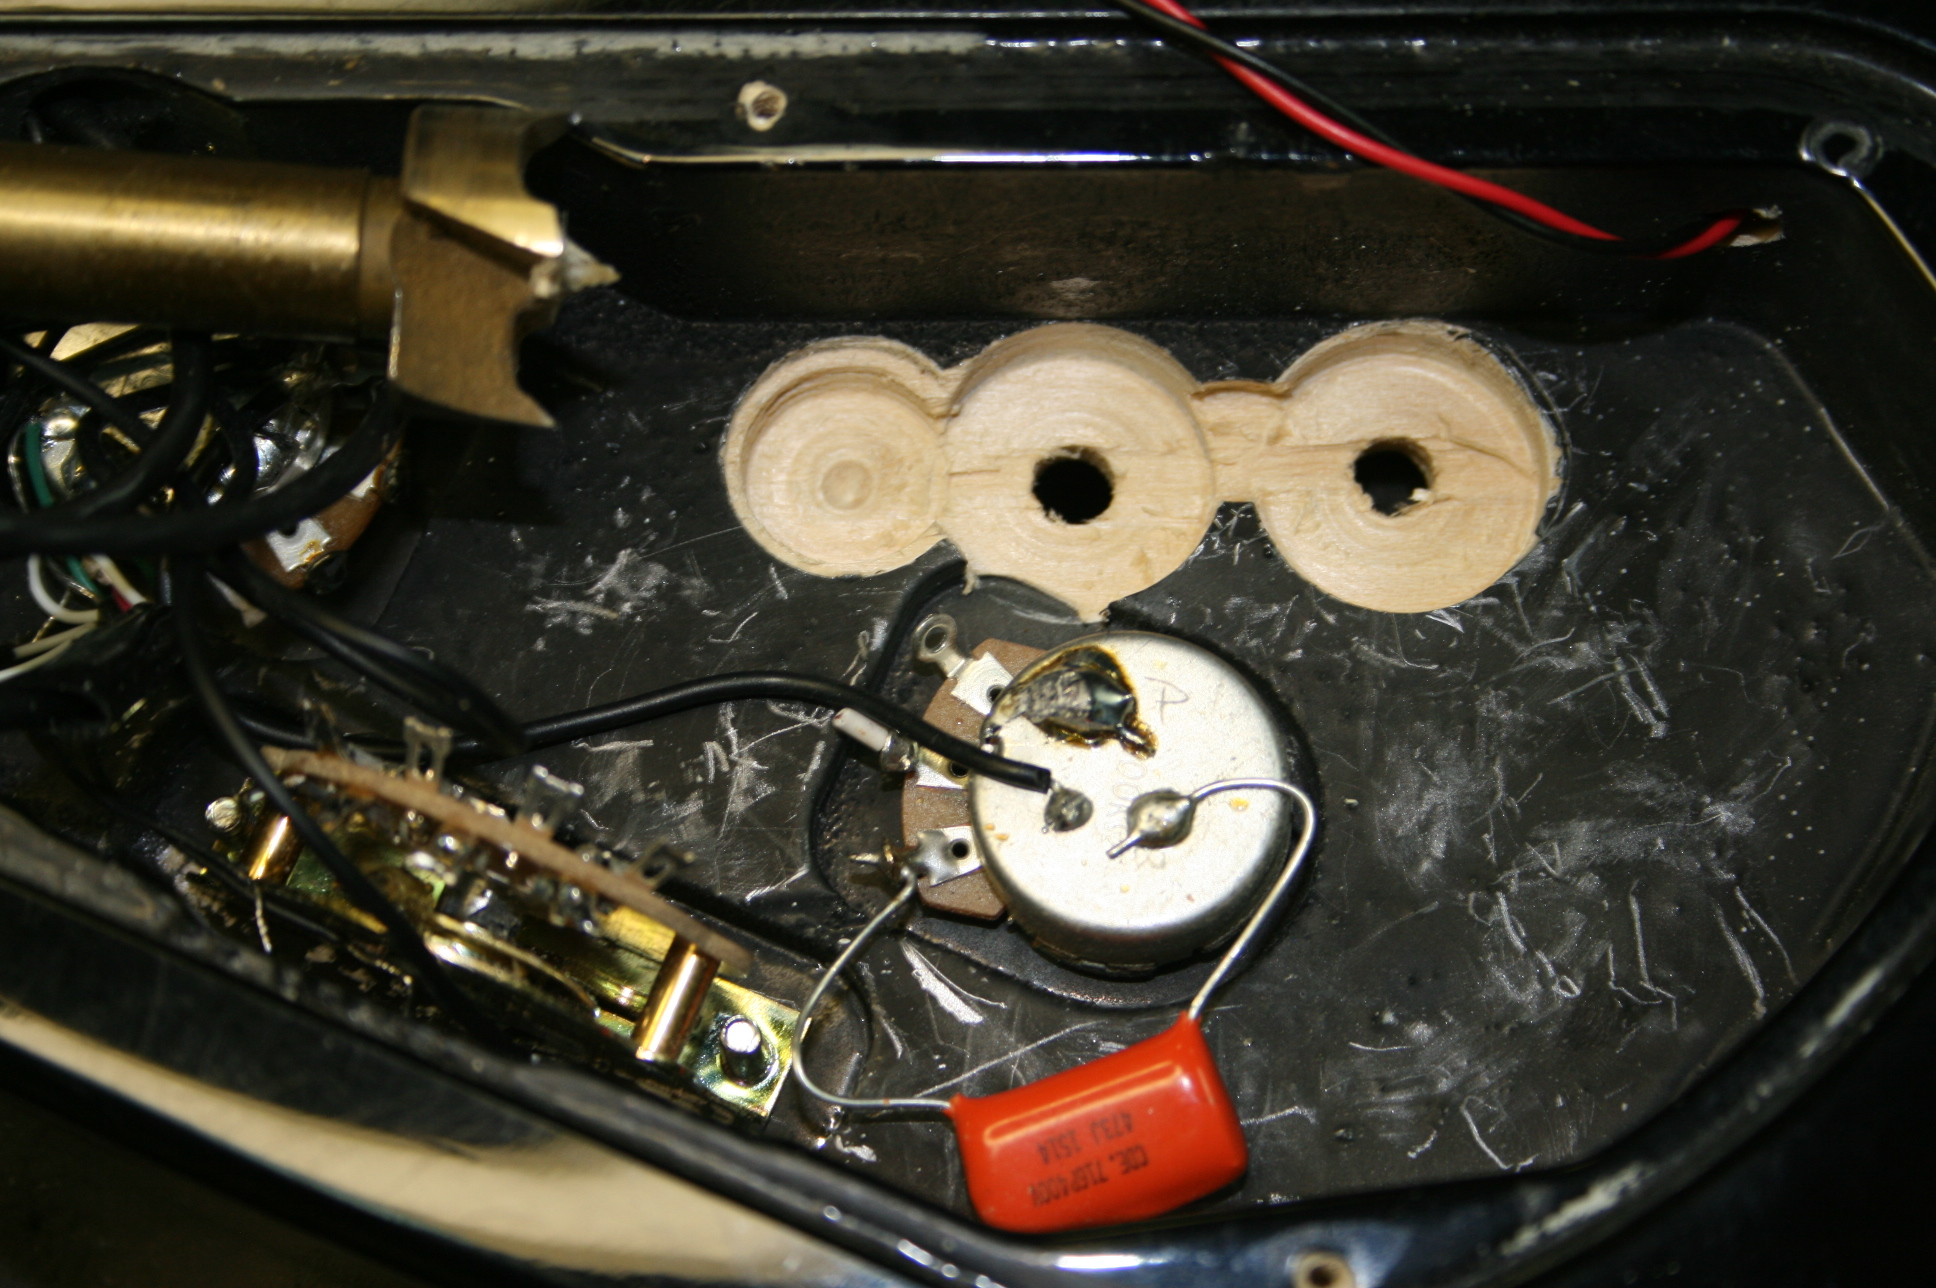 Sustainiac Stealth Pro Auxilliary Board Picture Of How To Make A Circuit Guitar Pick Jackson Dk 2 Cavity Prep For Aux Tt Using Forstner Bit Shown At Left In Photo And Chisel The Wall Thinner Switch